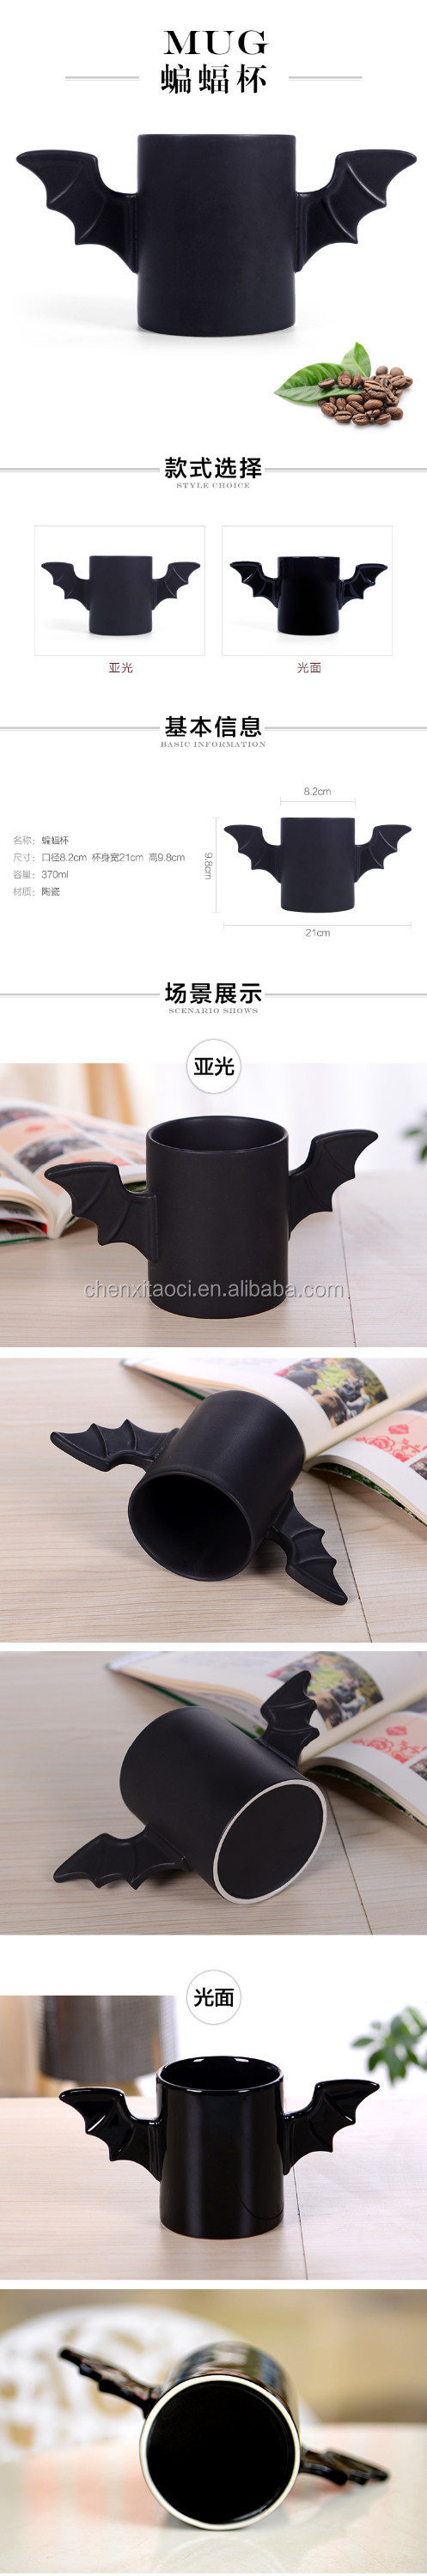 Black wing handle mug with custom logo, ceramic bat mug with matt suface